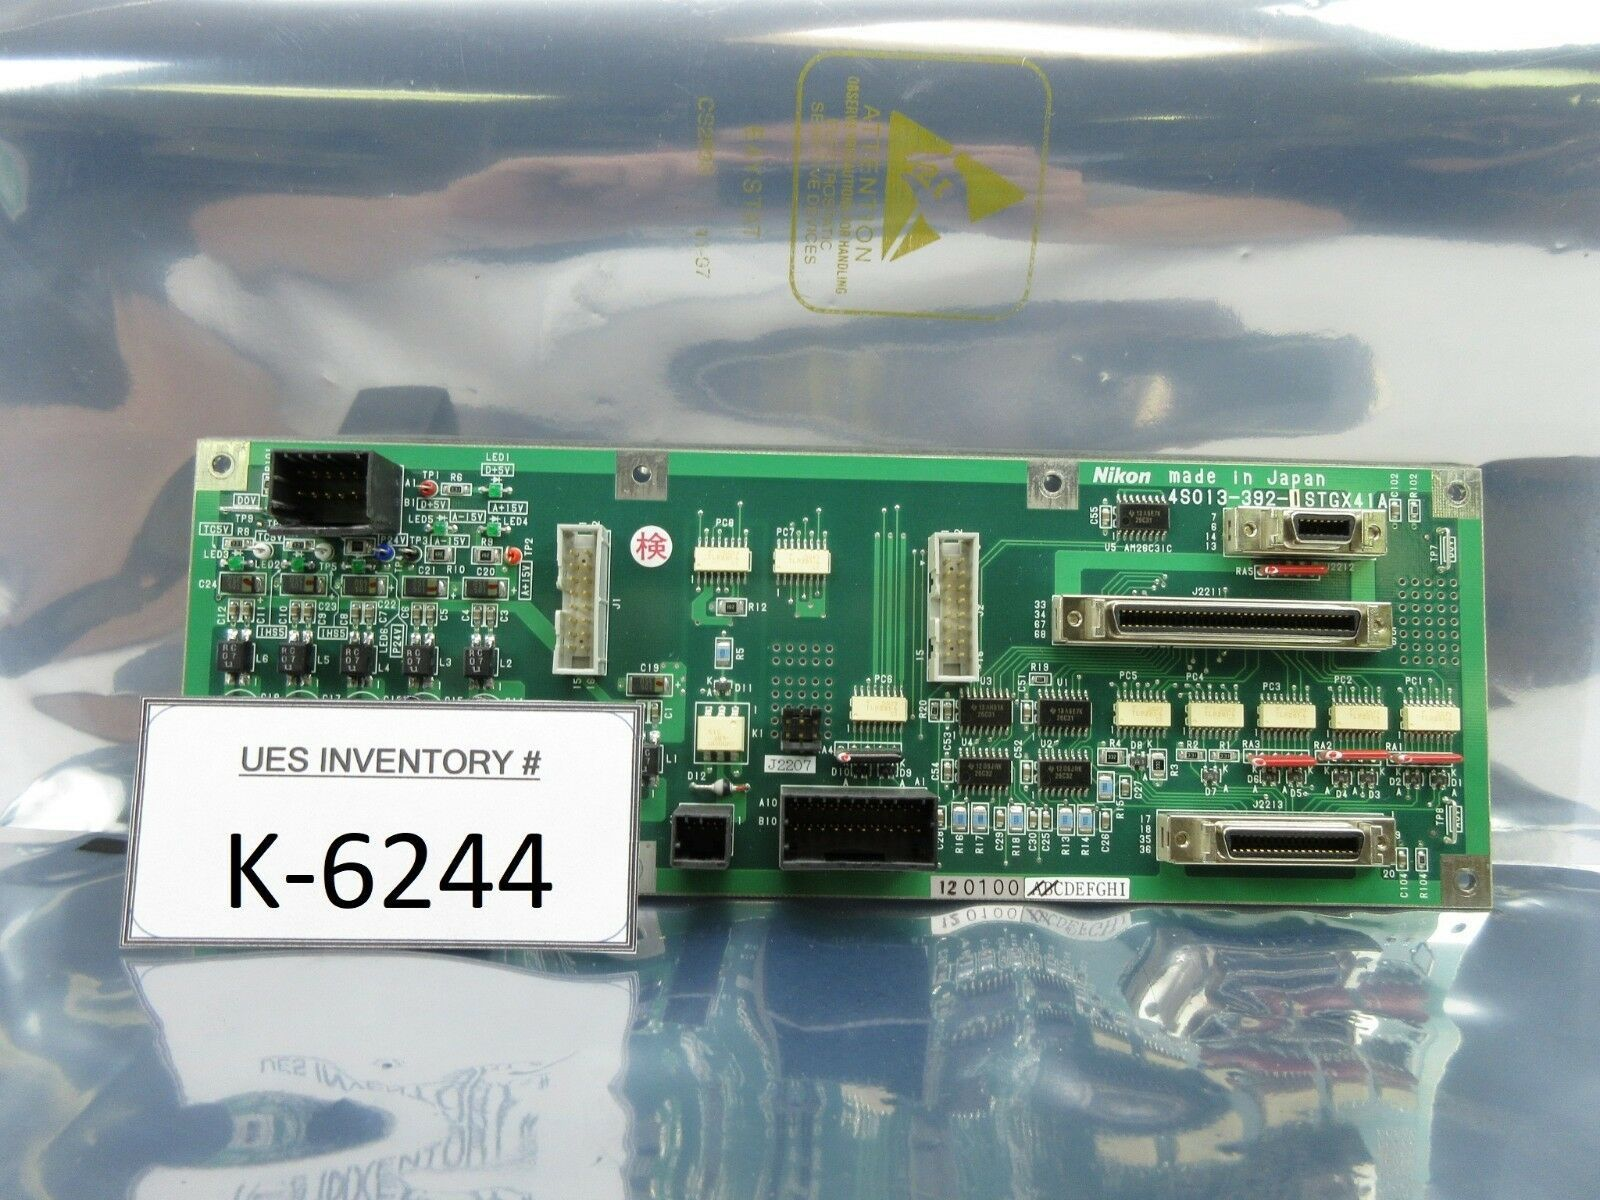 Nikon 4S013-392-1 Relay Interface Board PCB STGX41A NSR-S306C System Used